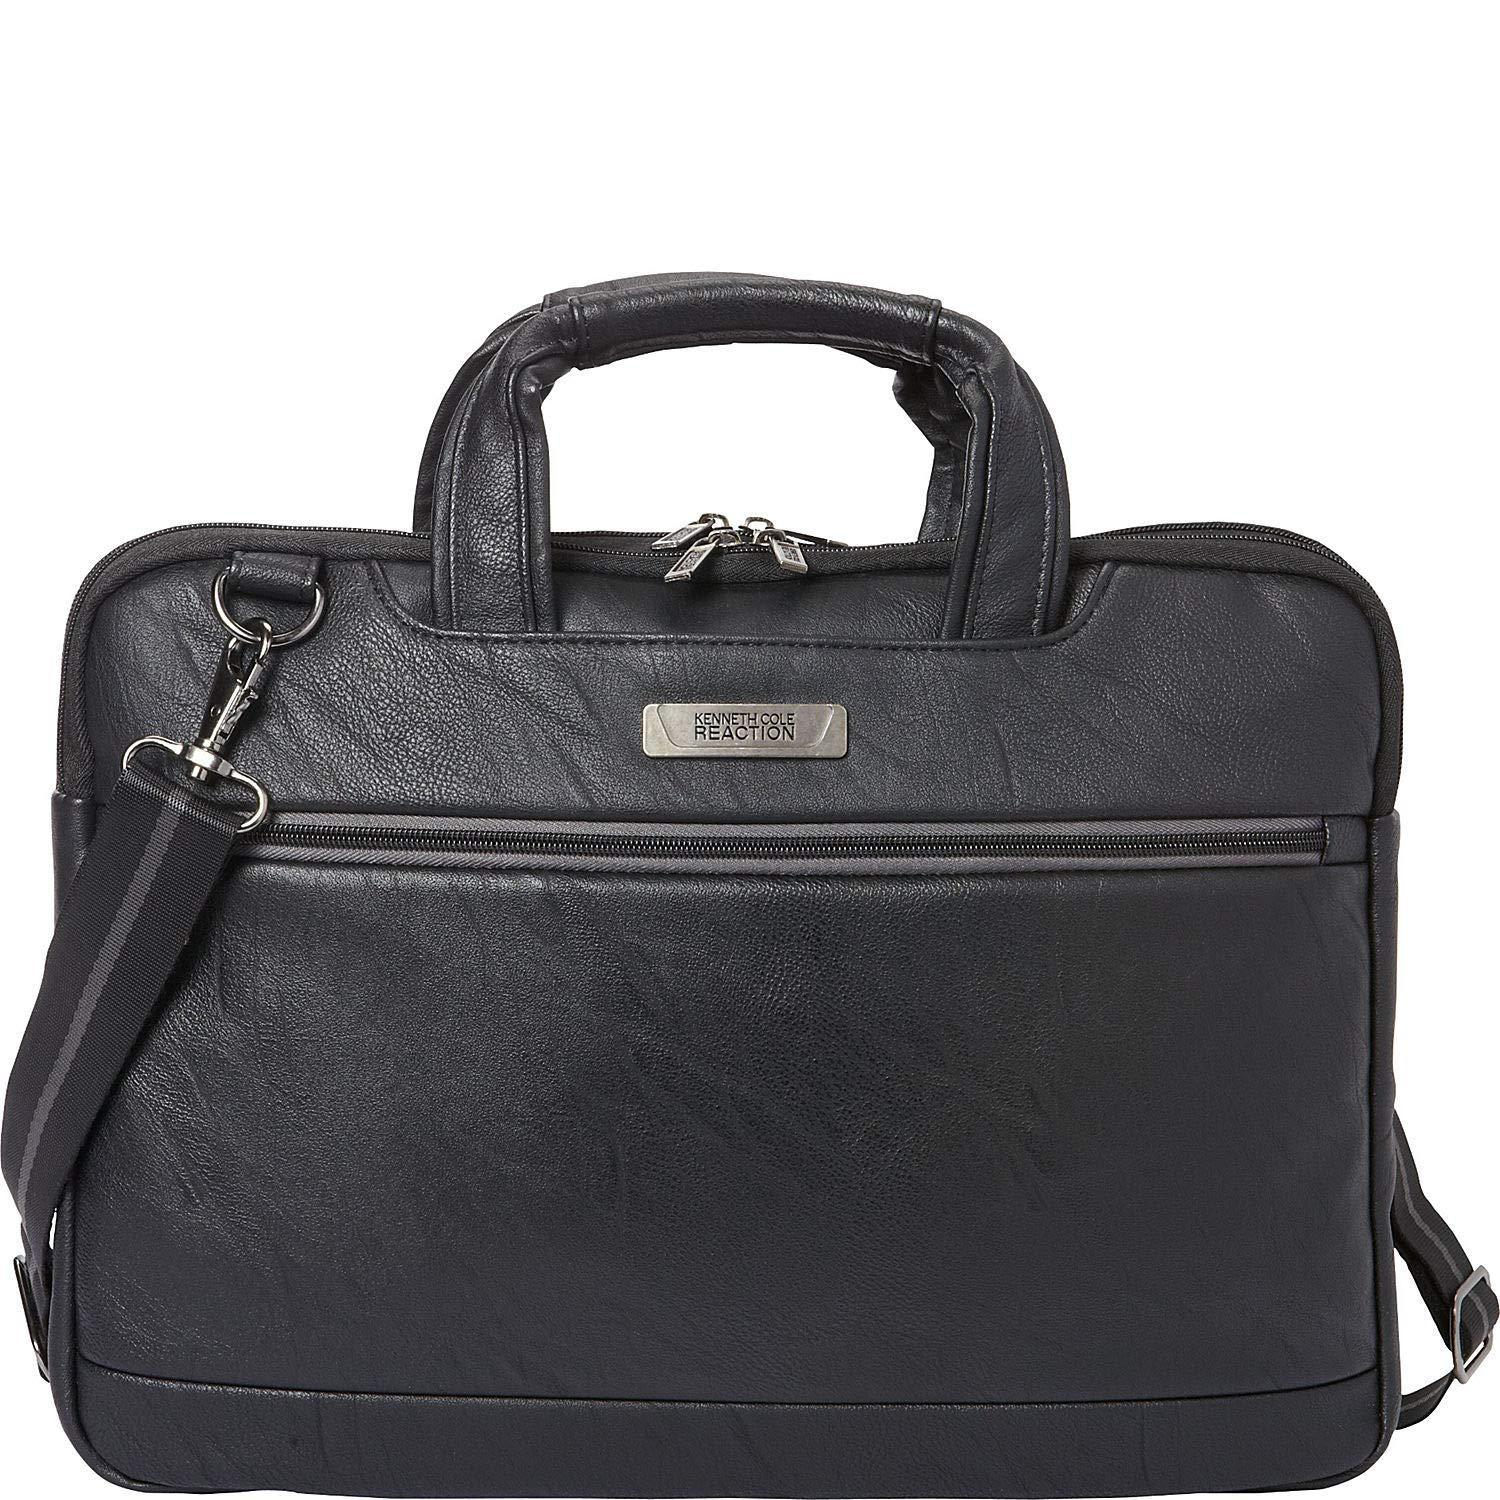 Kenneth Cole Reaction ProTec Faux Pebbled Leather Slim 16'' Laptop Business Briefcase / Tablet Bag, Black by Kenneth Cole REACTION